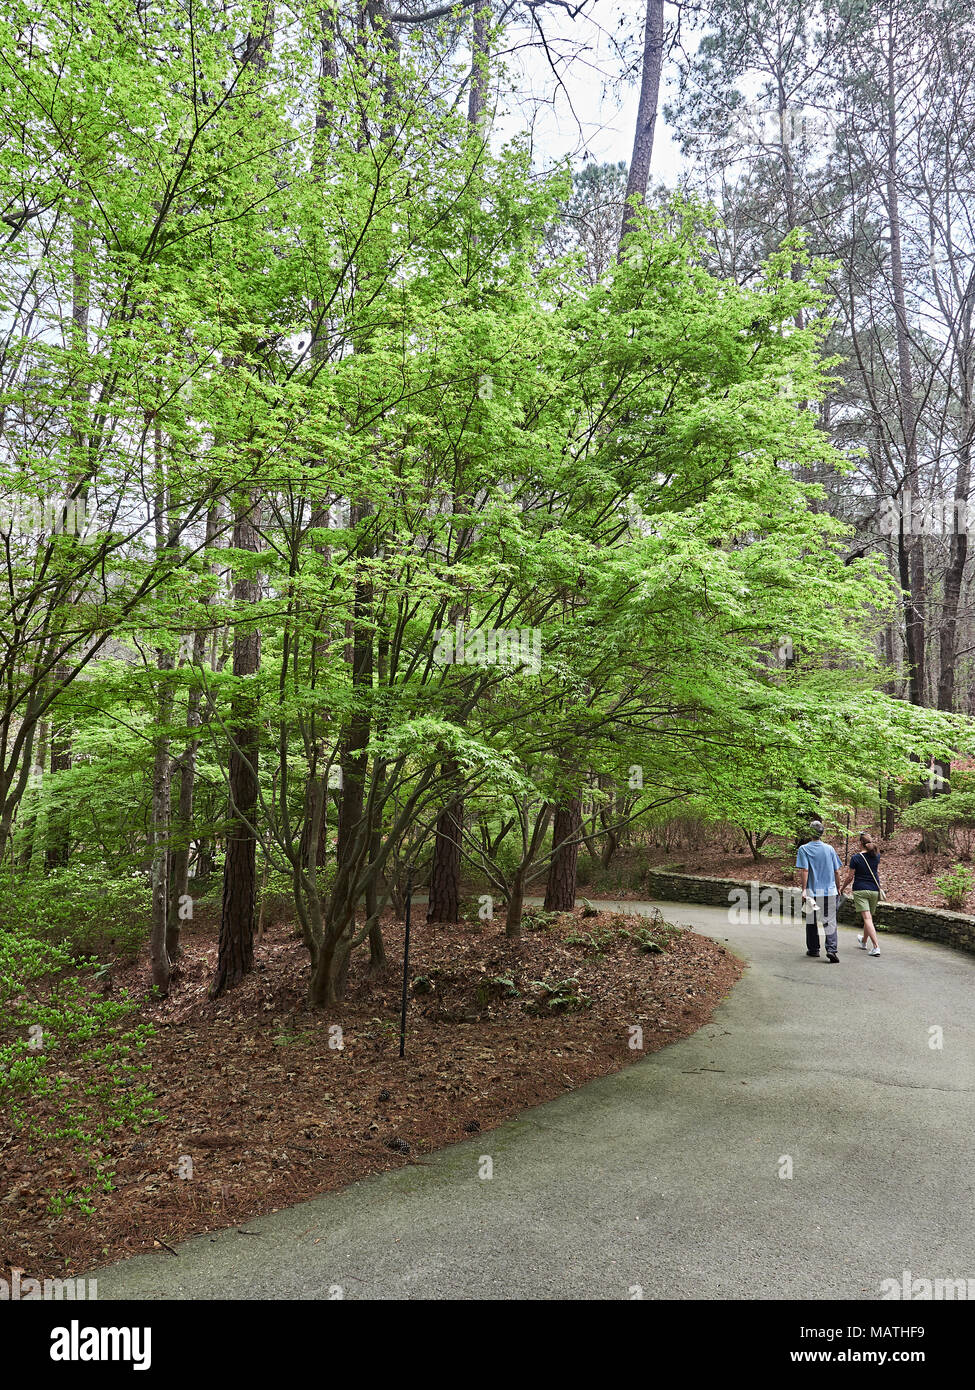 Two people, man and woman, walking past a stand of Japanese Maple, Acer Palmatum, trees in a natural setting in Callaway Gardens, Pine Mountain GA USA - Stock Image